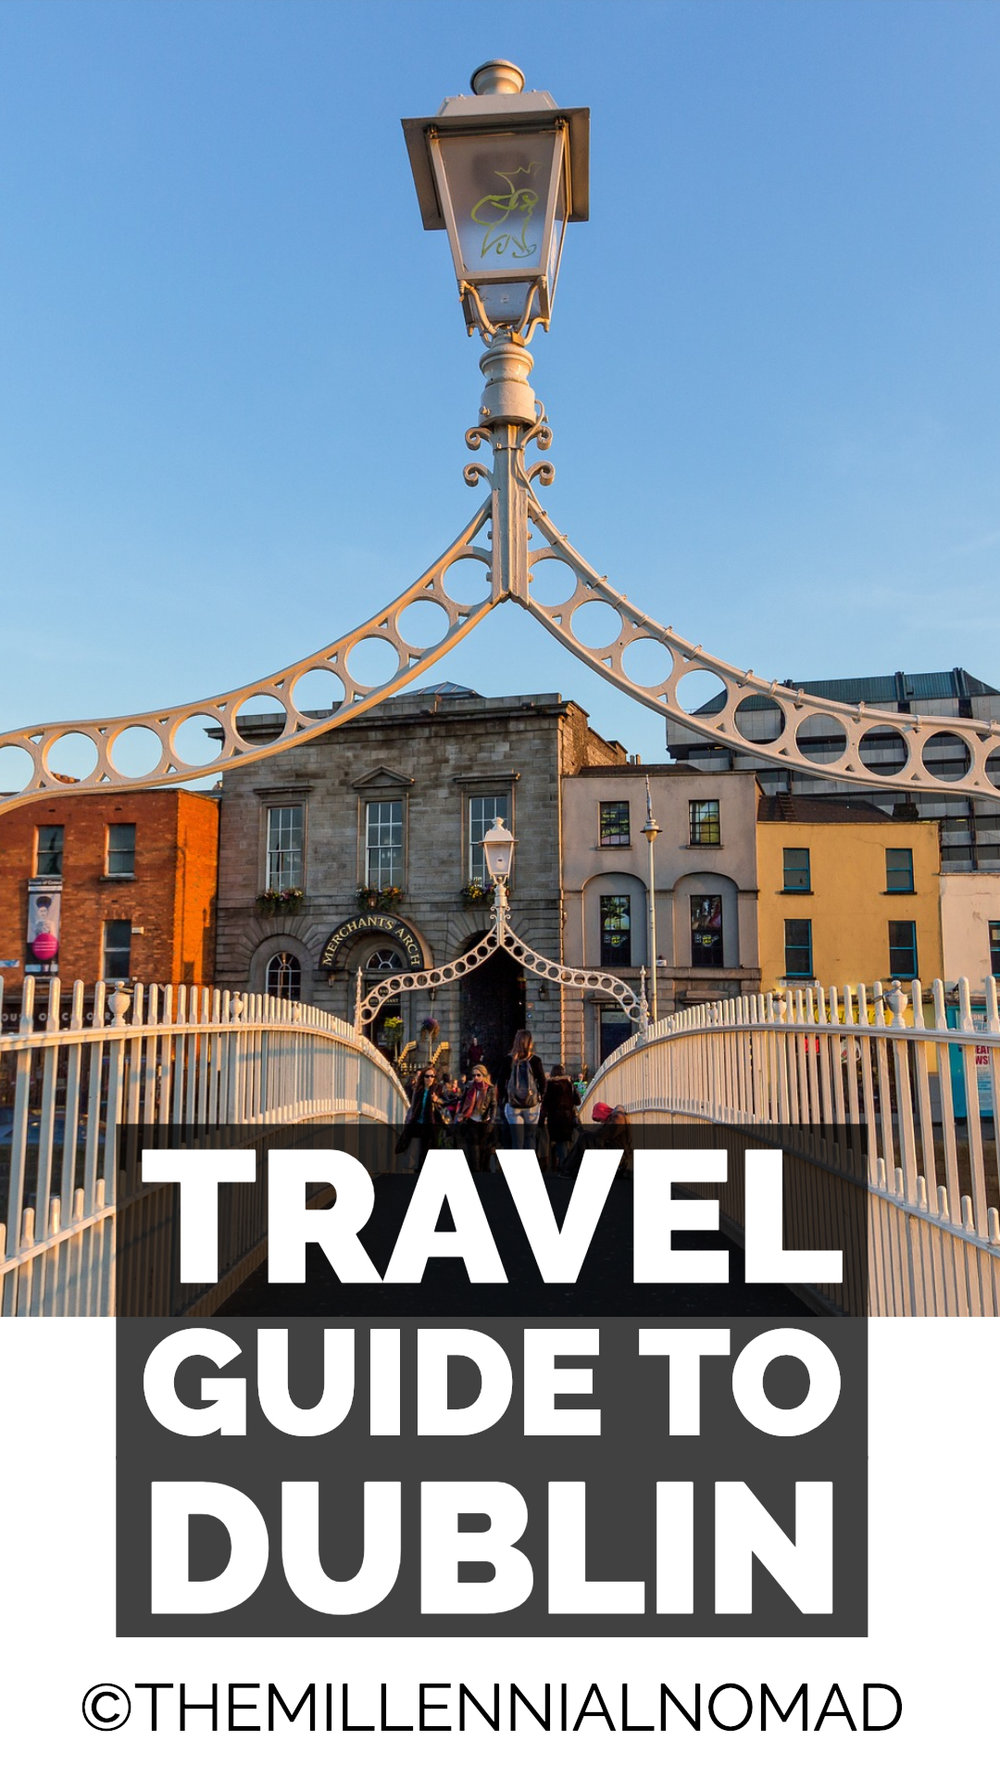 I came to Dublin for the first time in 2007 for a two months holiday and now I have lived here for 4 years. These are two different experiences and I keep on learning and discovering new things about this city every day. So if you are planning to visit Dublin any time soon, here is my quick guide.